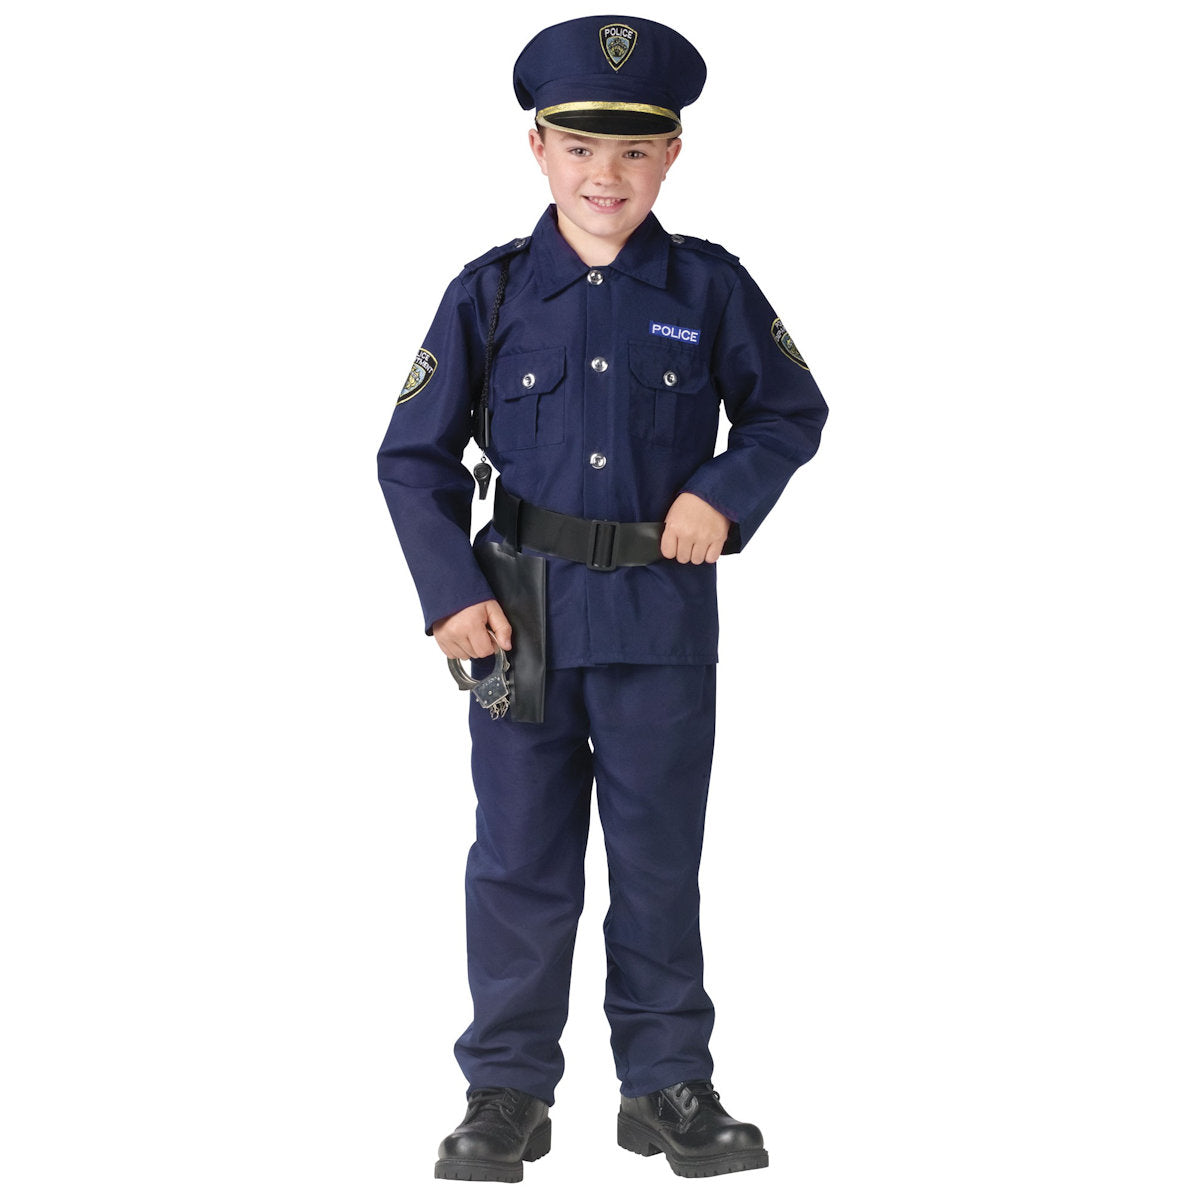 Policeman Deluxe Police Boy's fancy Dress Costume complete with hat